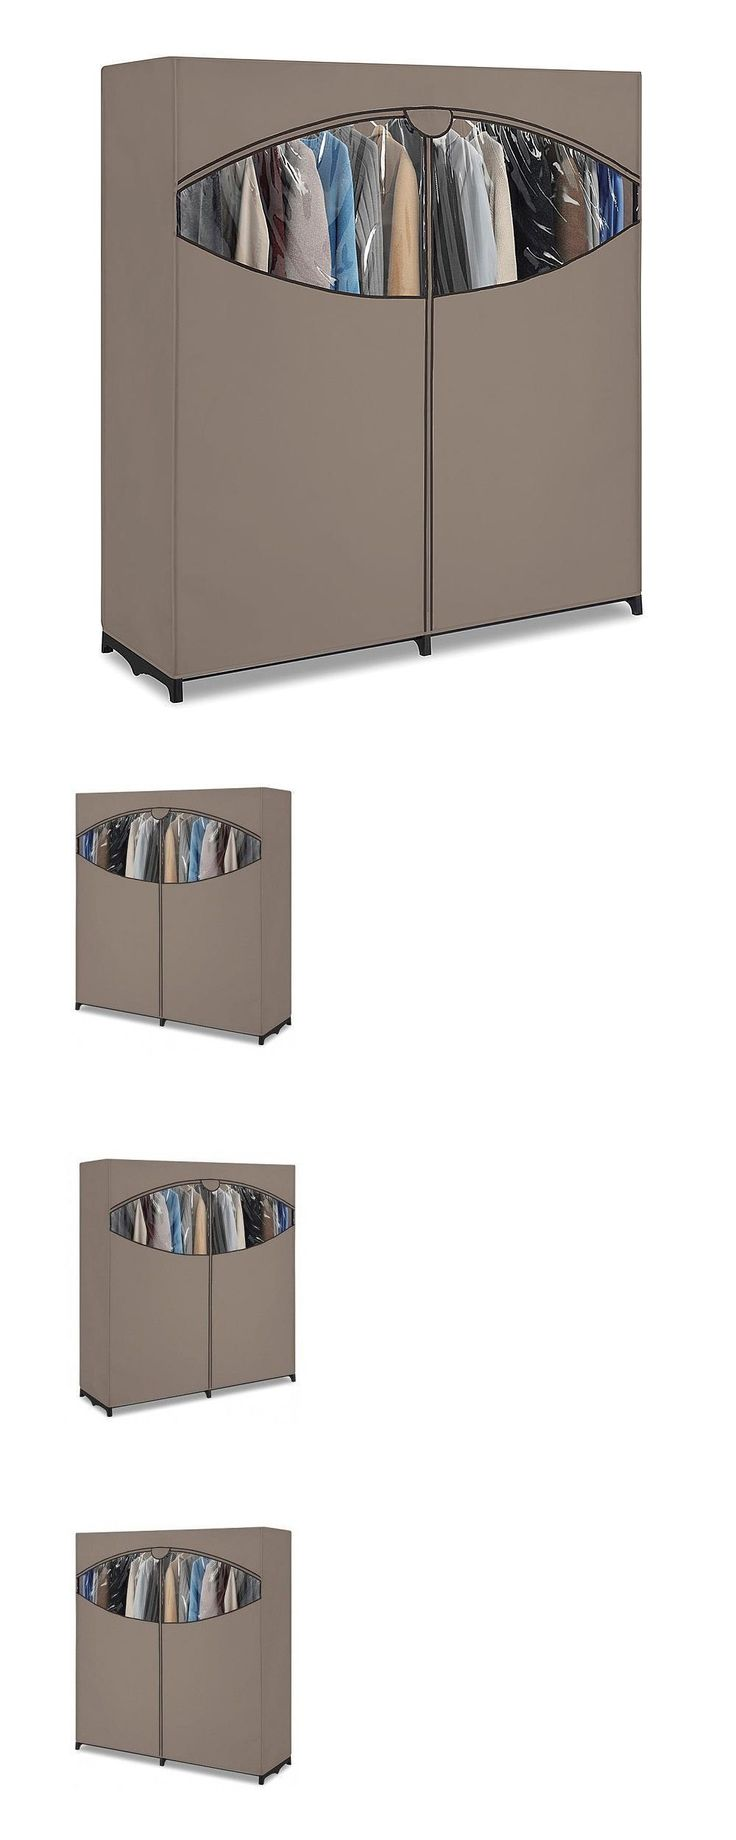 household items: Portable Wardrobe Clothes Closet Storage Bedroom Organizer Rack Furniture Shelf -> BUY IT NOW ONLY: $39.15 on eBay!